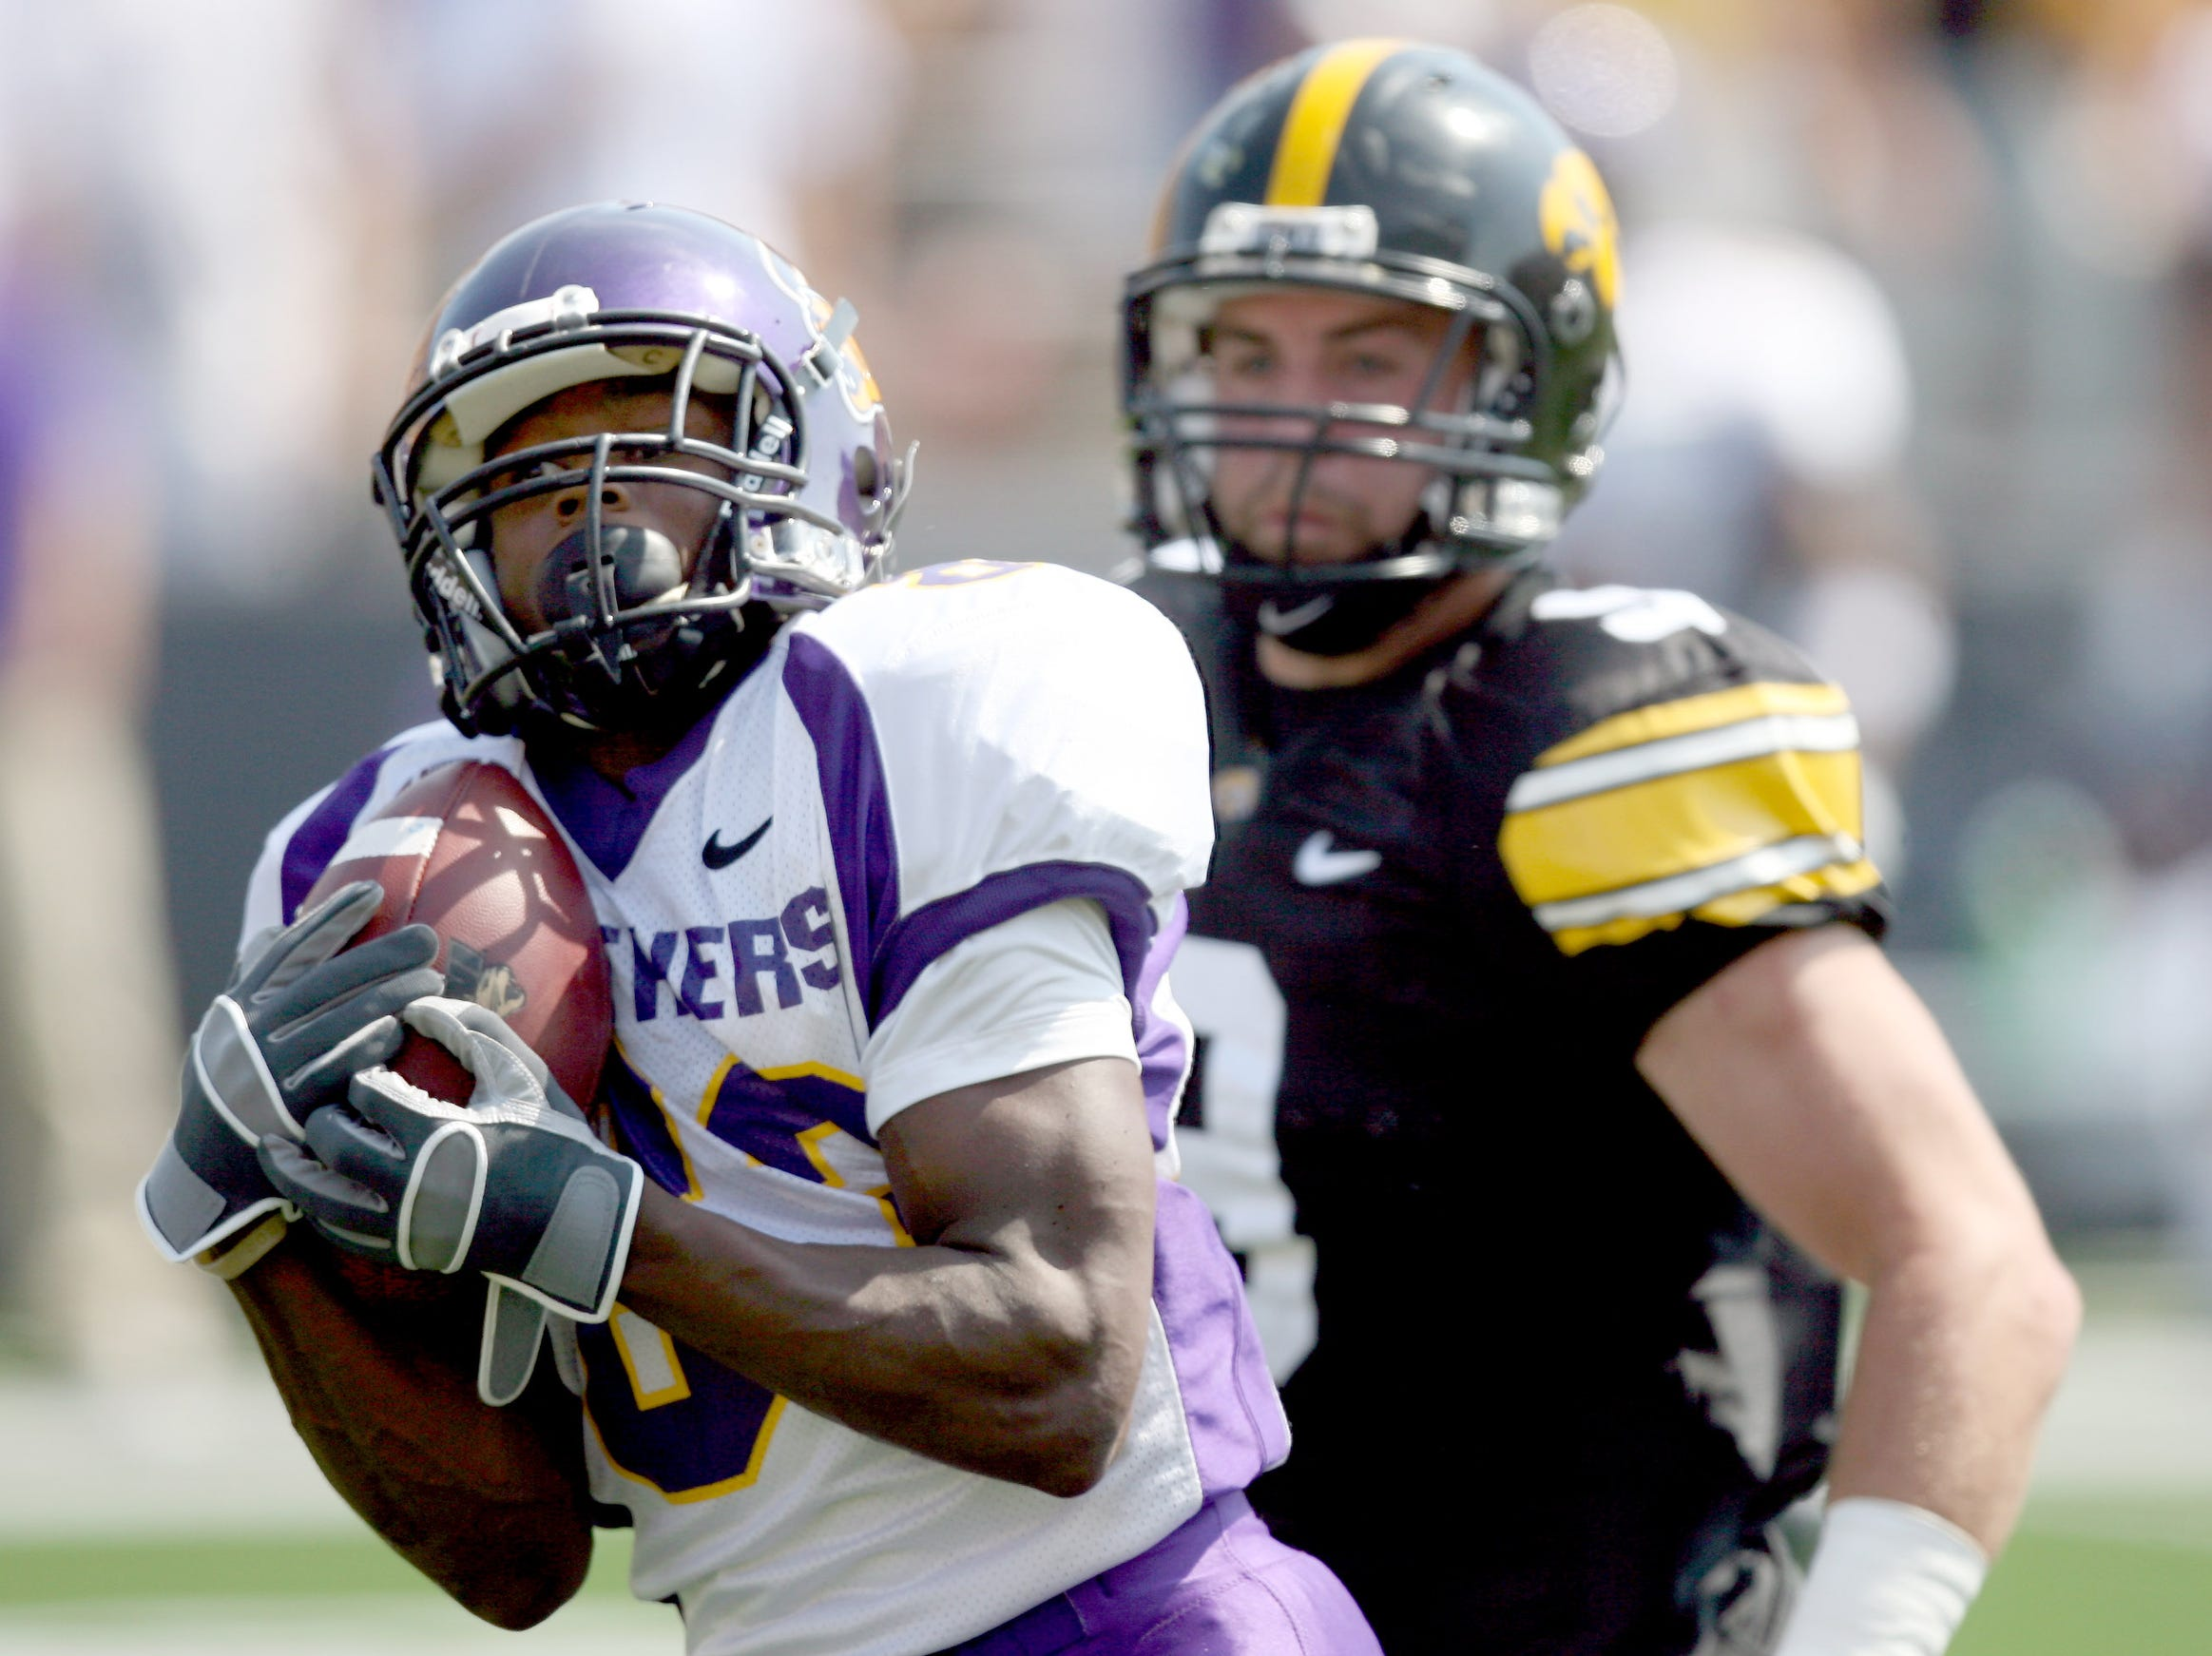 Northern Iowa wide receiver Jarred Herring hauls in a pass in front of Iowa cornerback Tyler Sash  in Iowa City on Sept. 5, 2009.